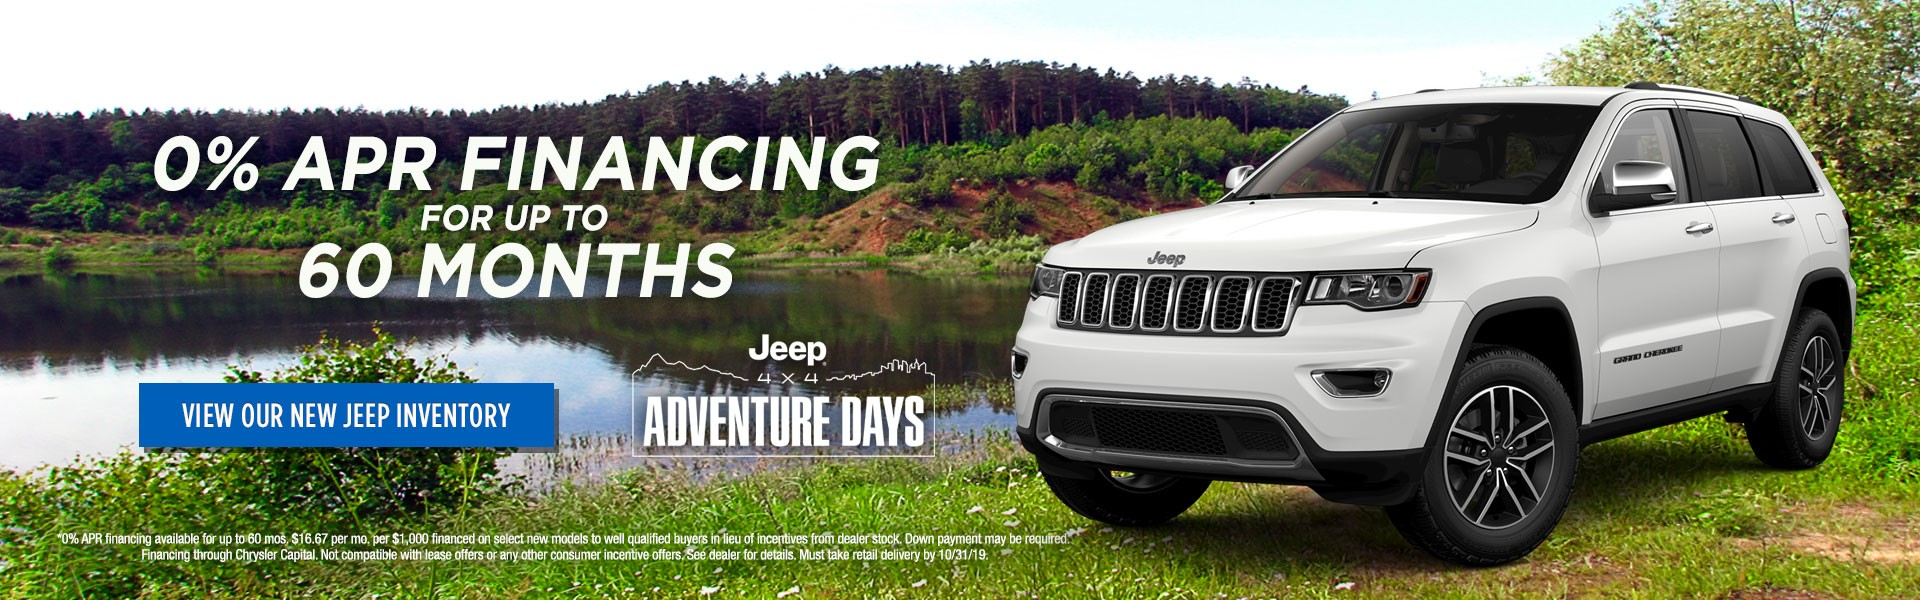 Jeep Adventure Days 0% Financing for 60 Months